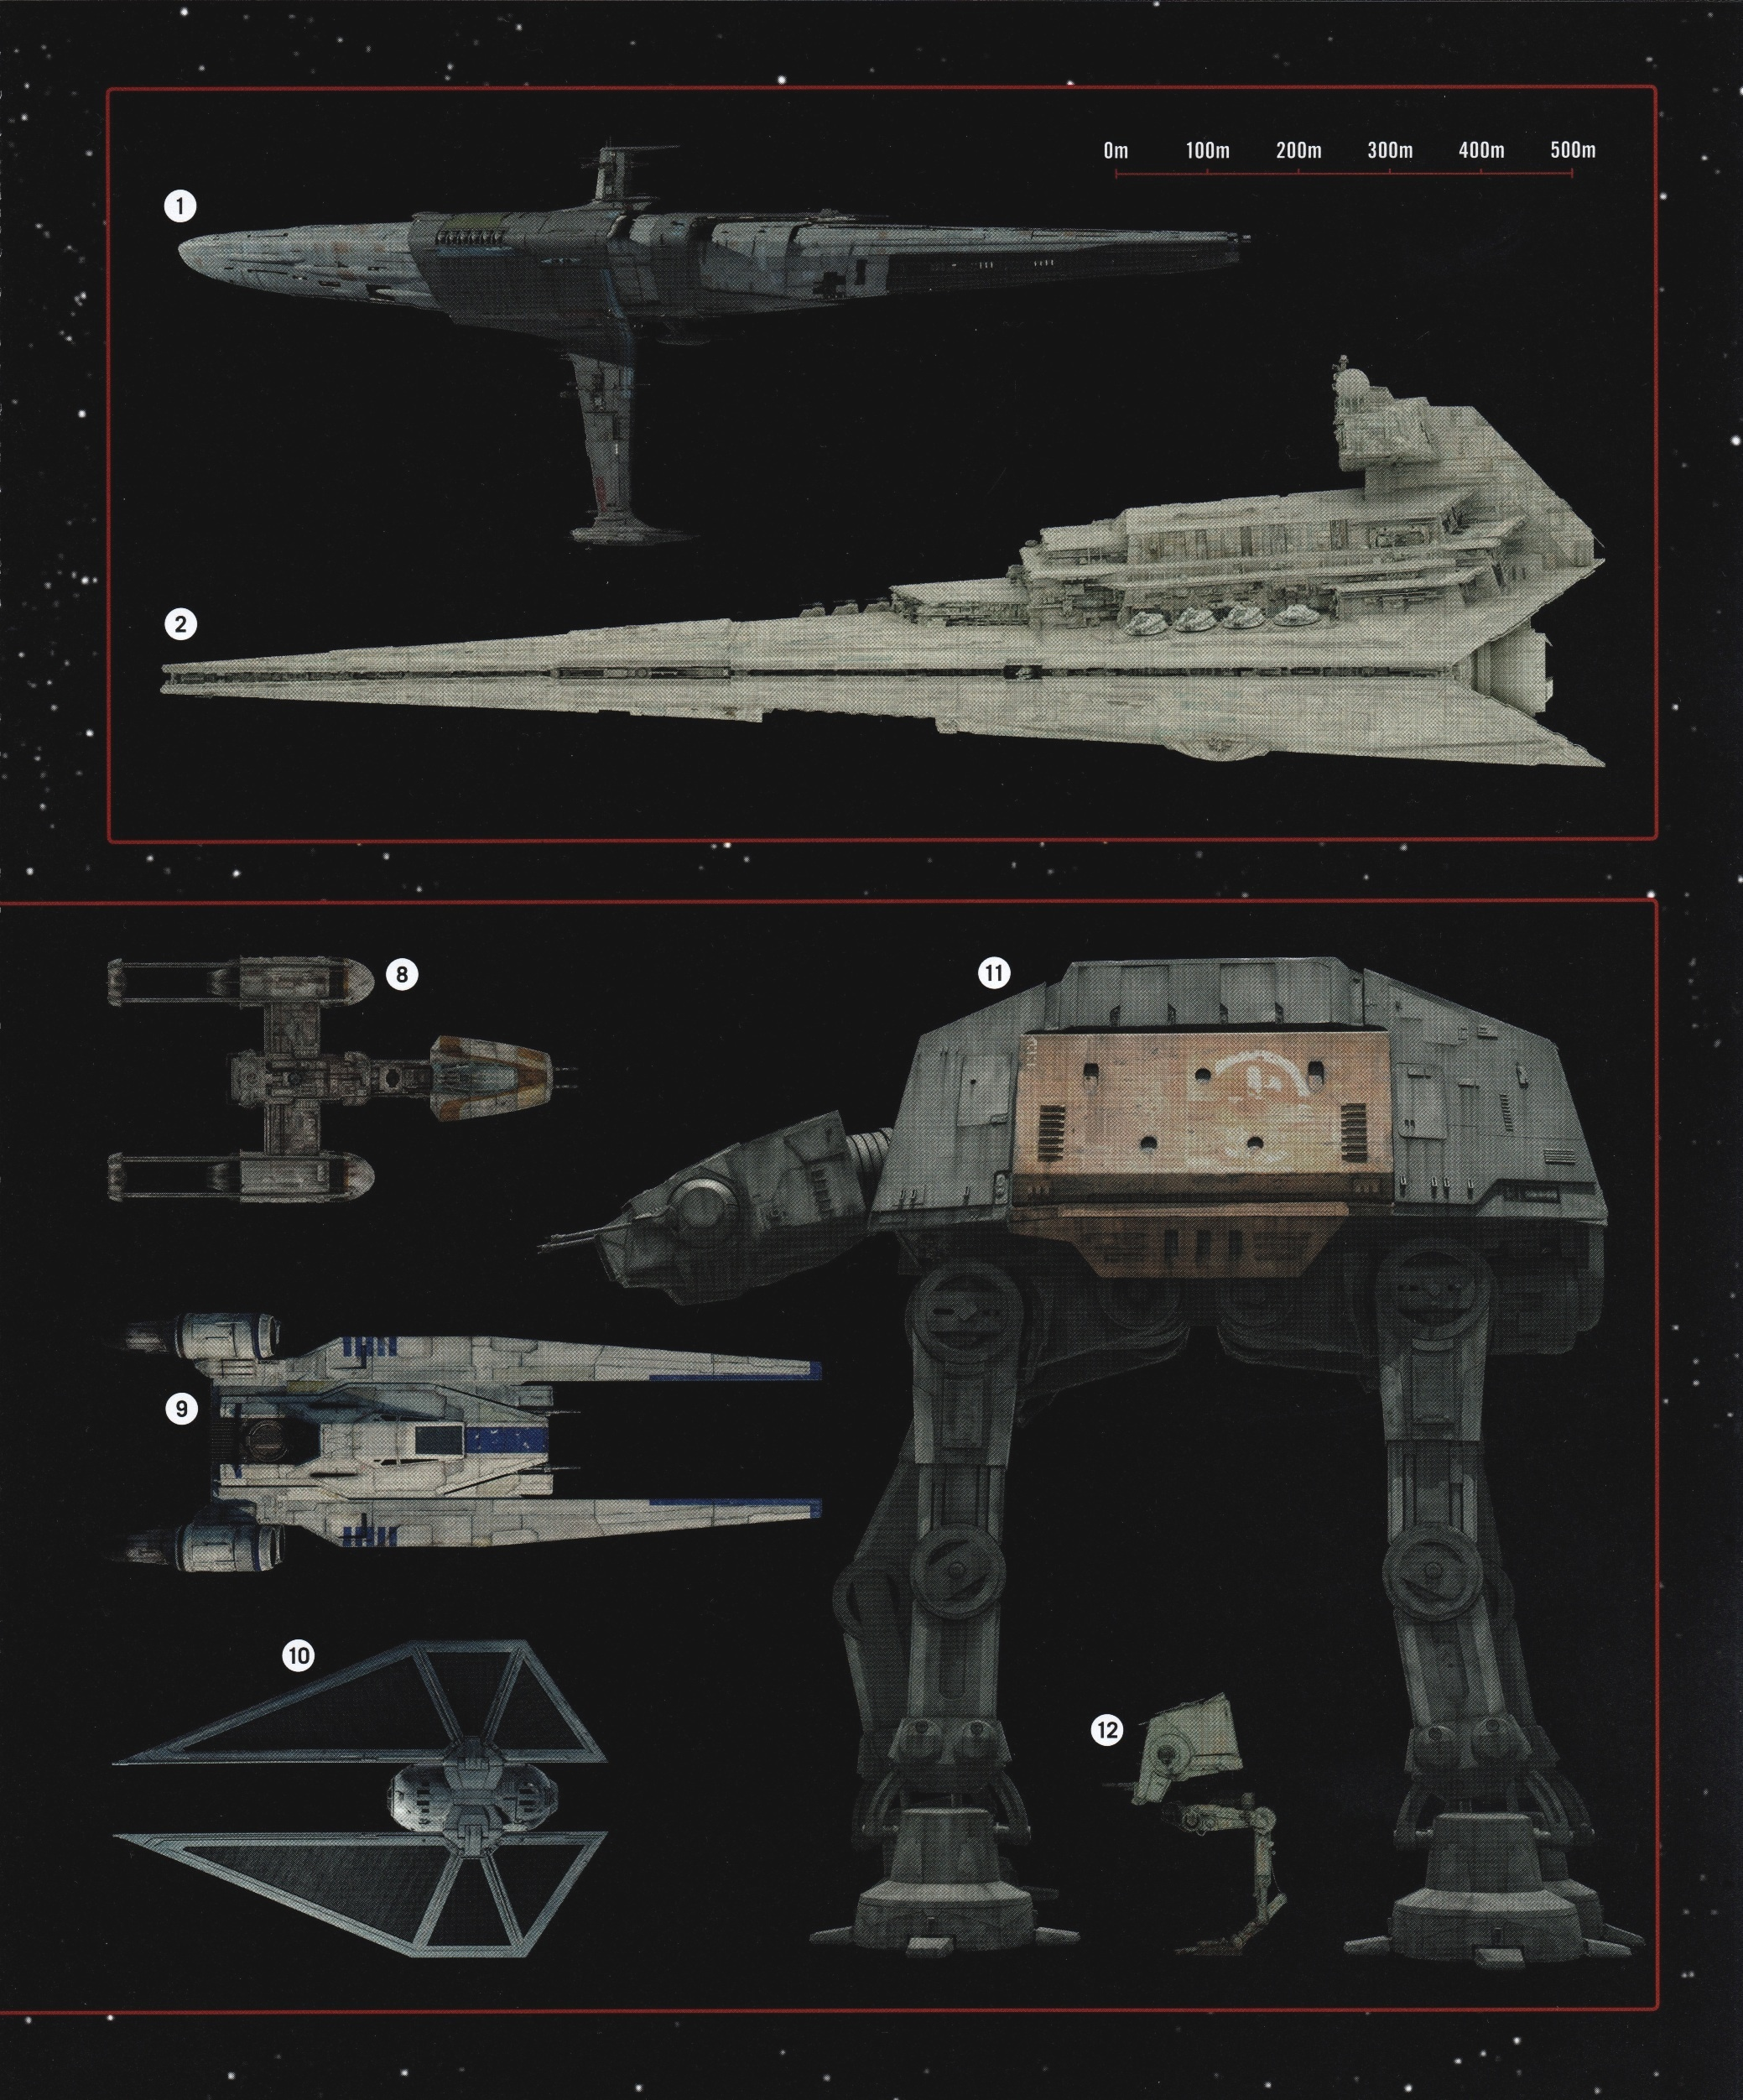 Rogue One Ultimate Visual Guide (b0bafett_Empire) p185